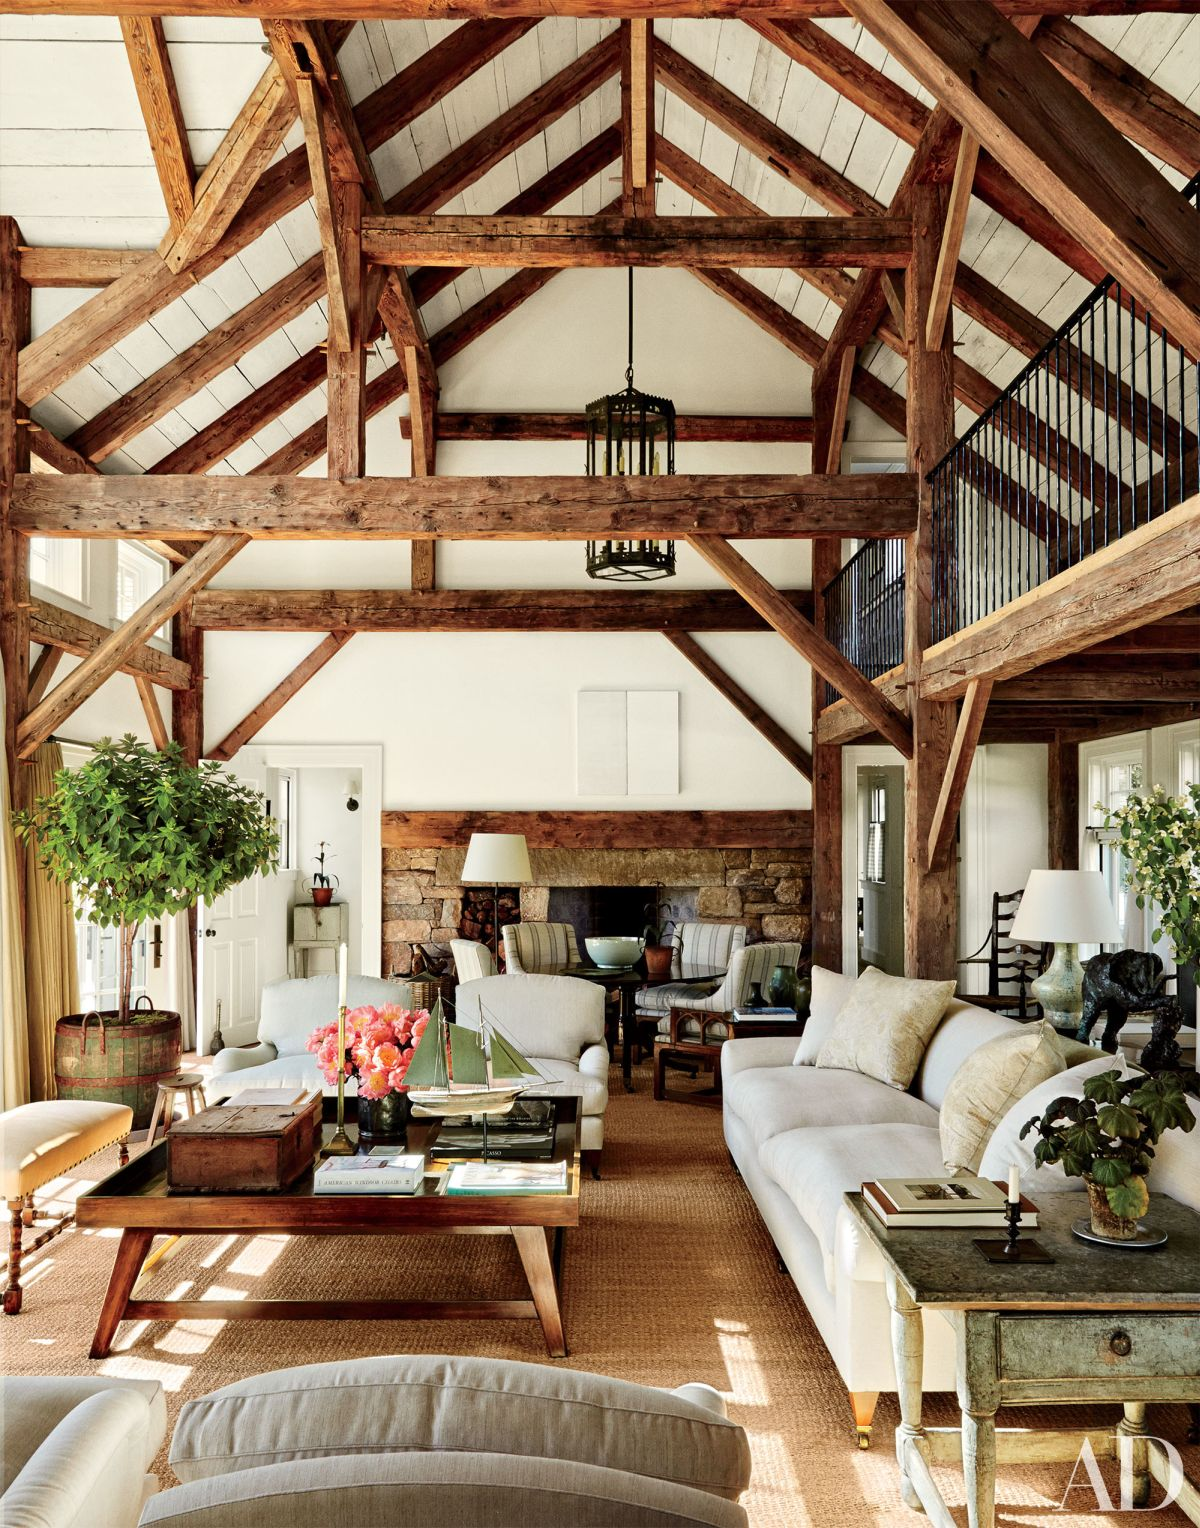 Structural Wood Beams Architecture